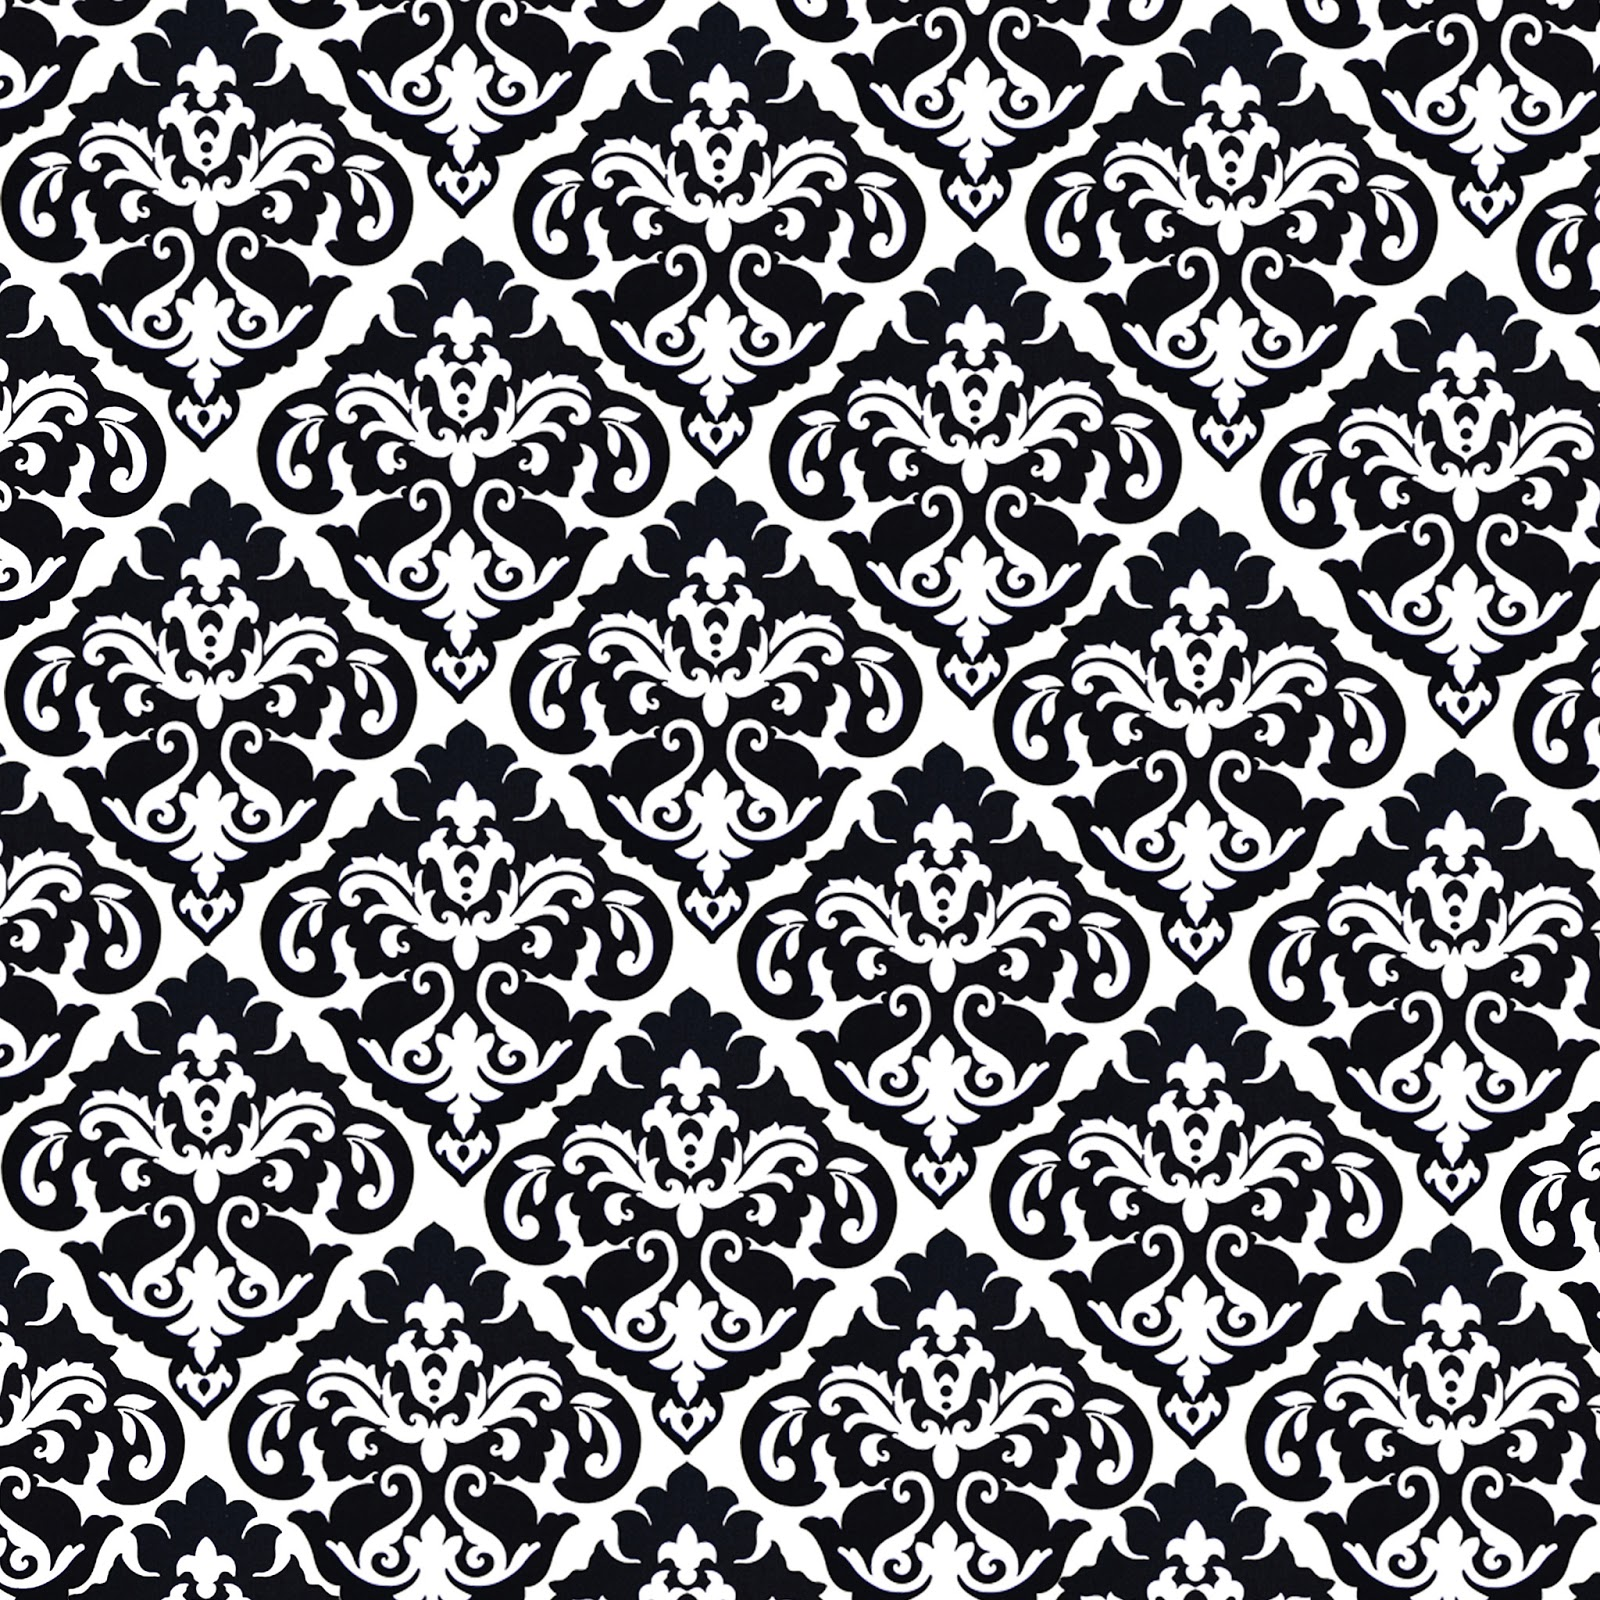 Black And White Damask Pattern Wallpaperawsome Backgrounds Wallpapers 1600x1600